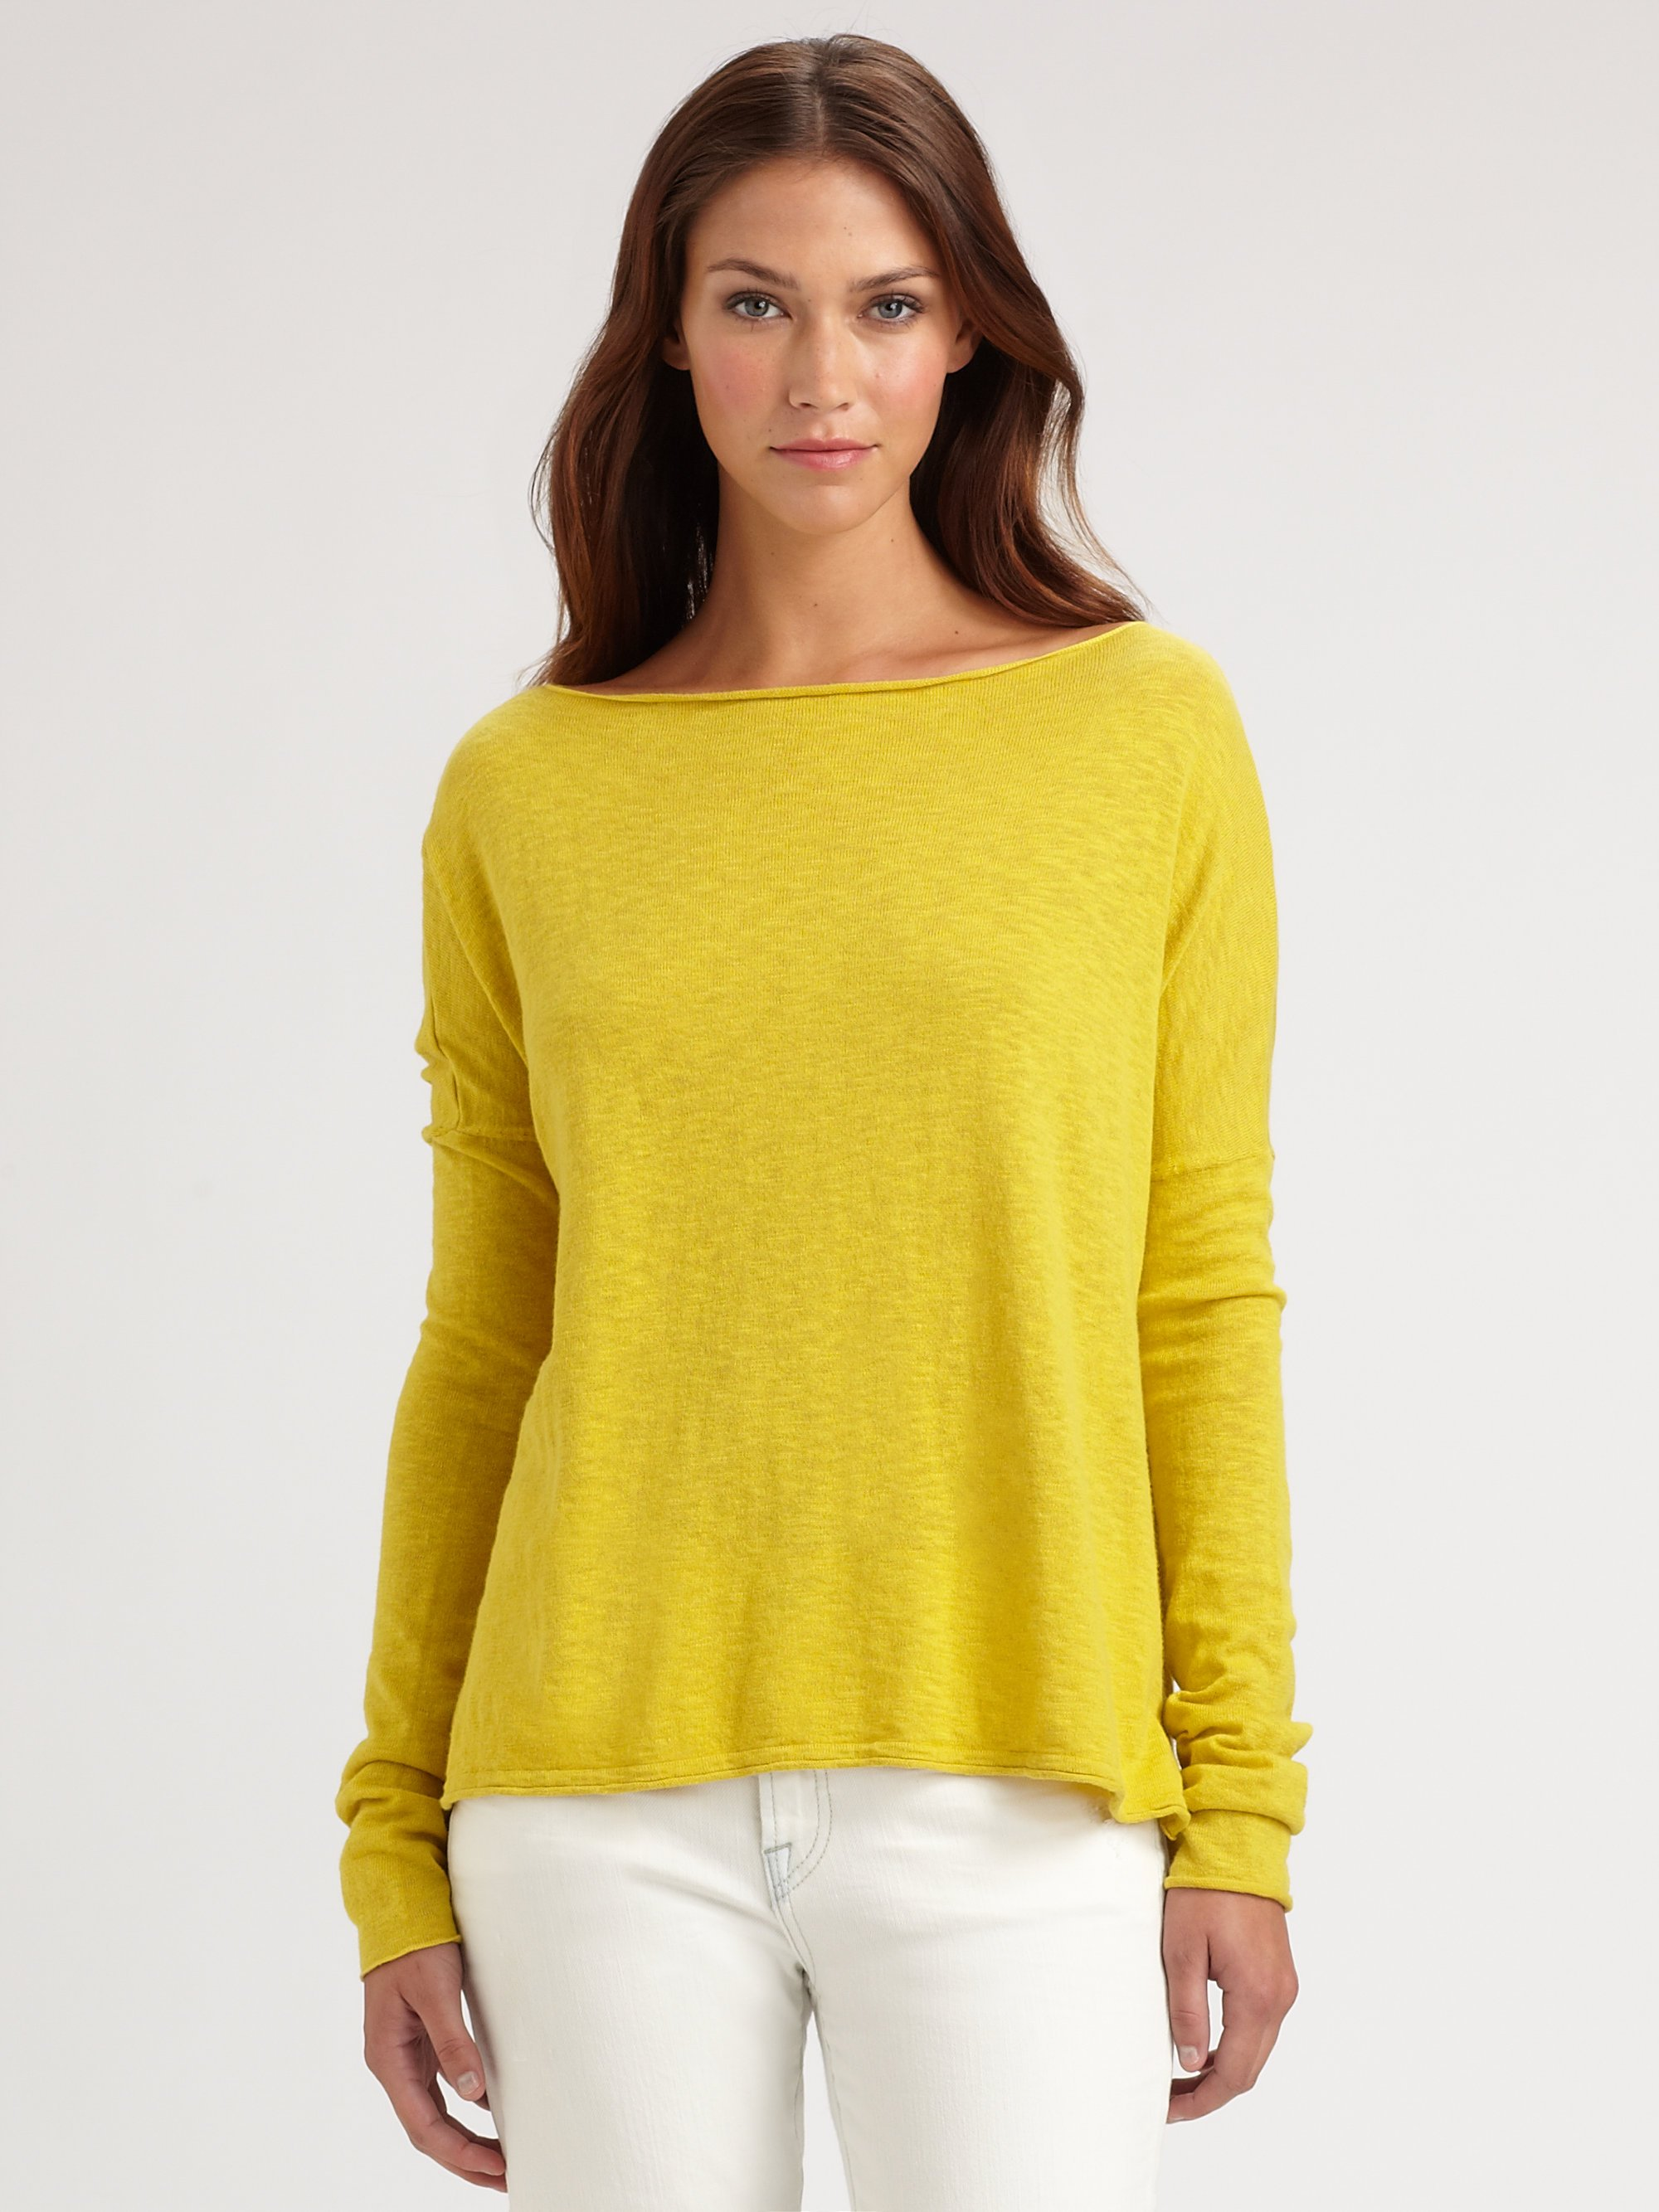 Vince Oversized Boat Neck Slub Cotton Sweater in Yellow | Lyst